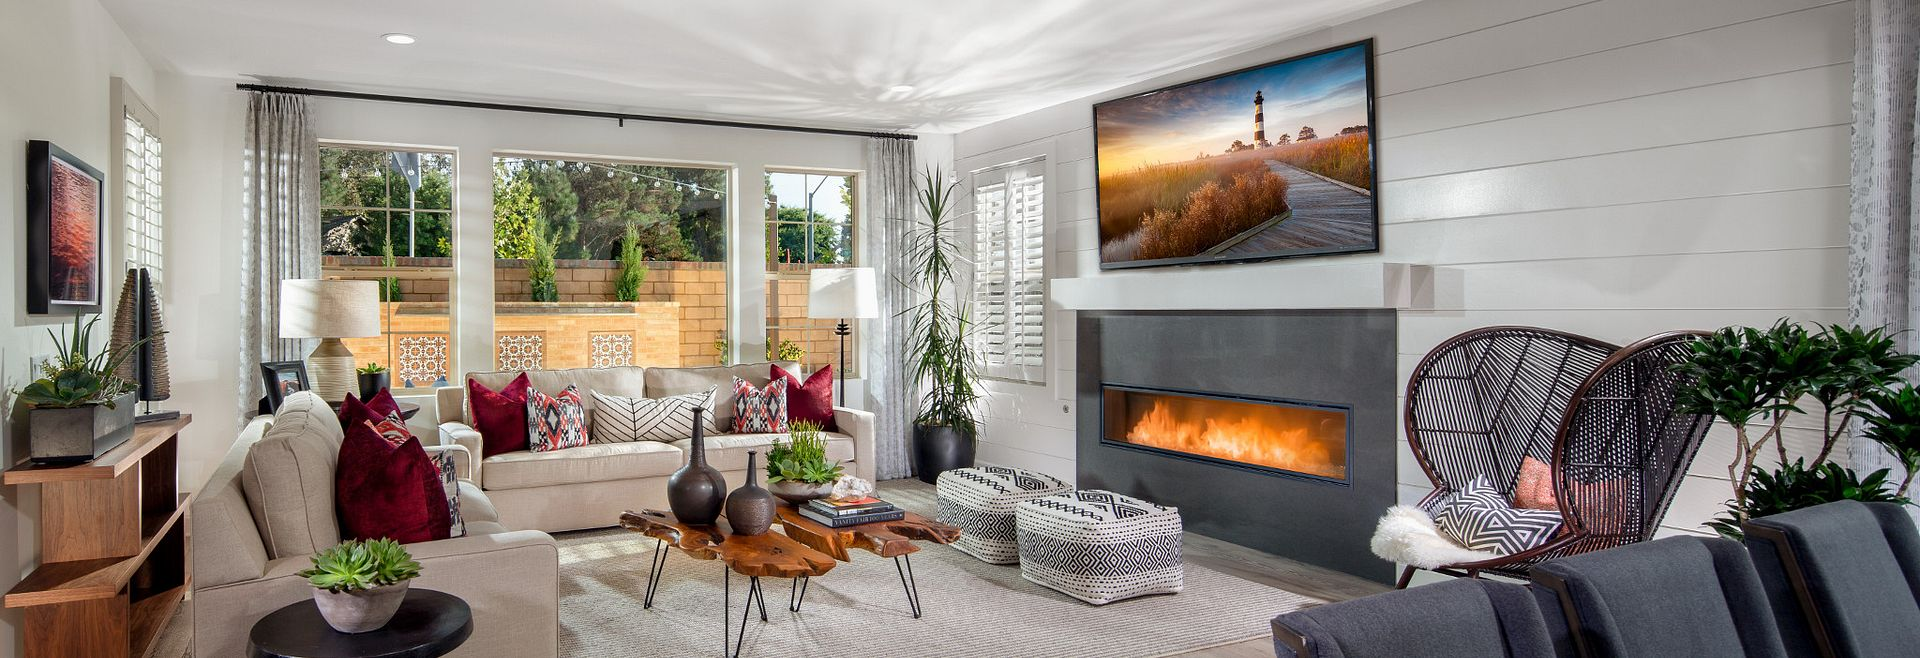 Plan 2 Living Room with fireplace and large windows